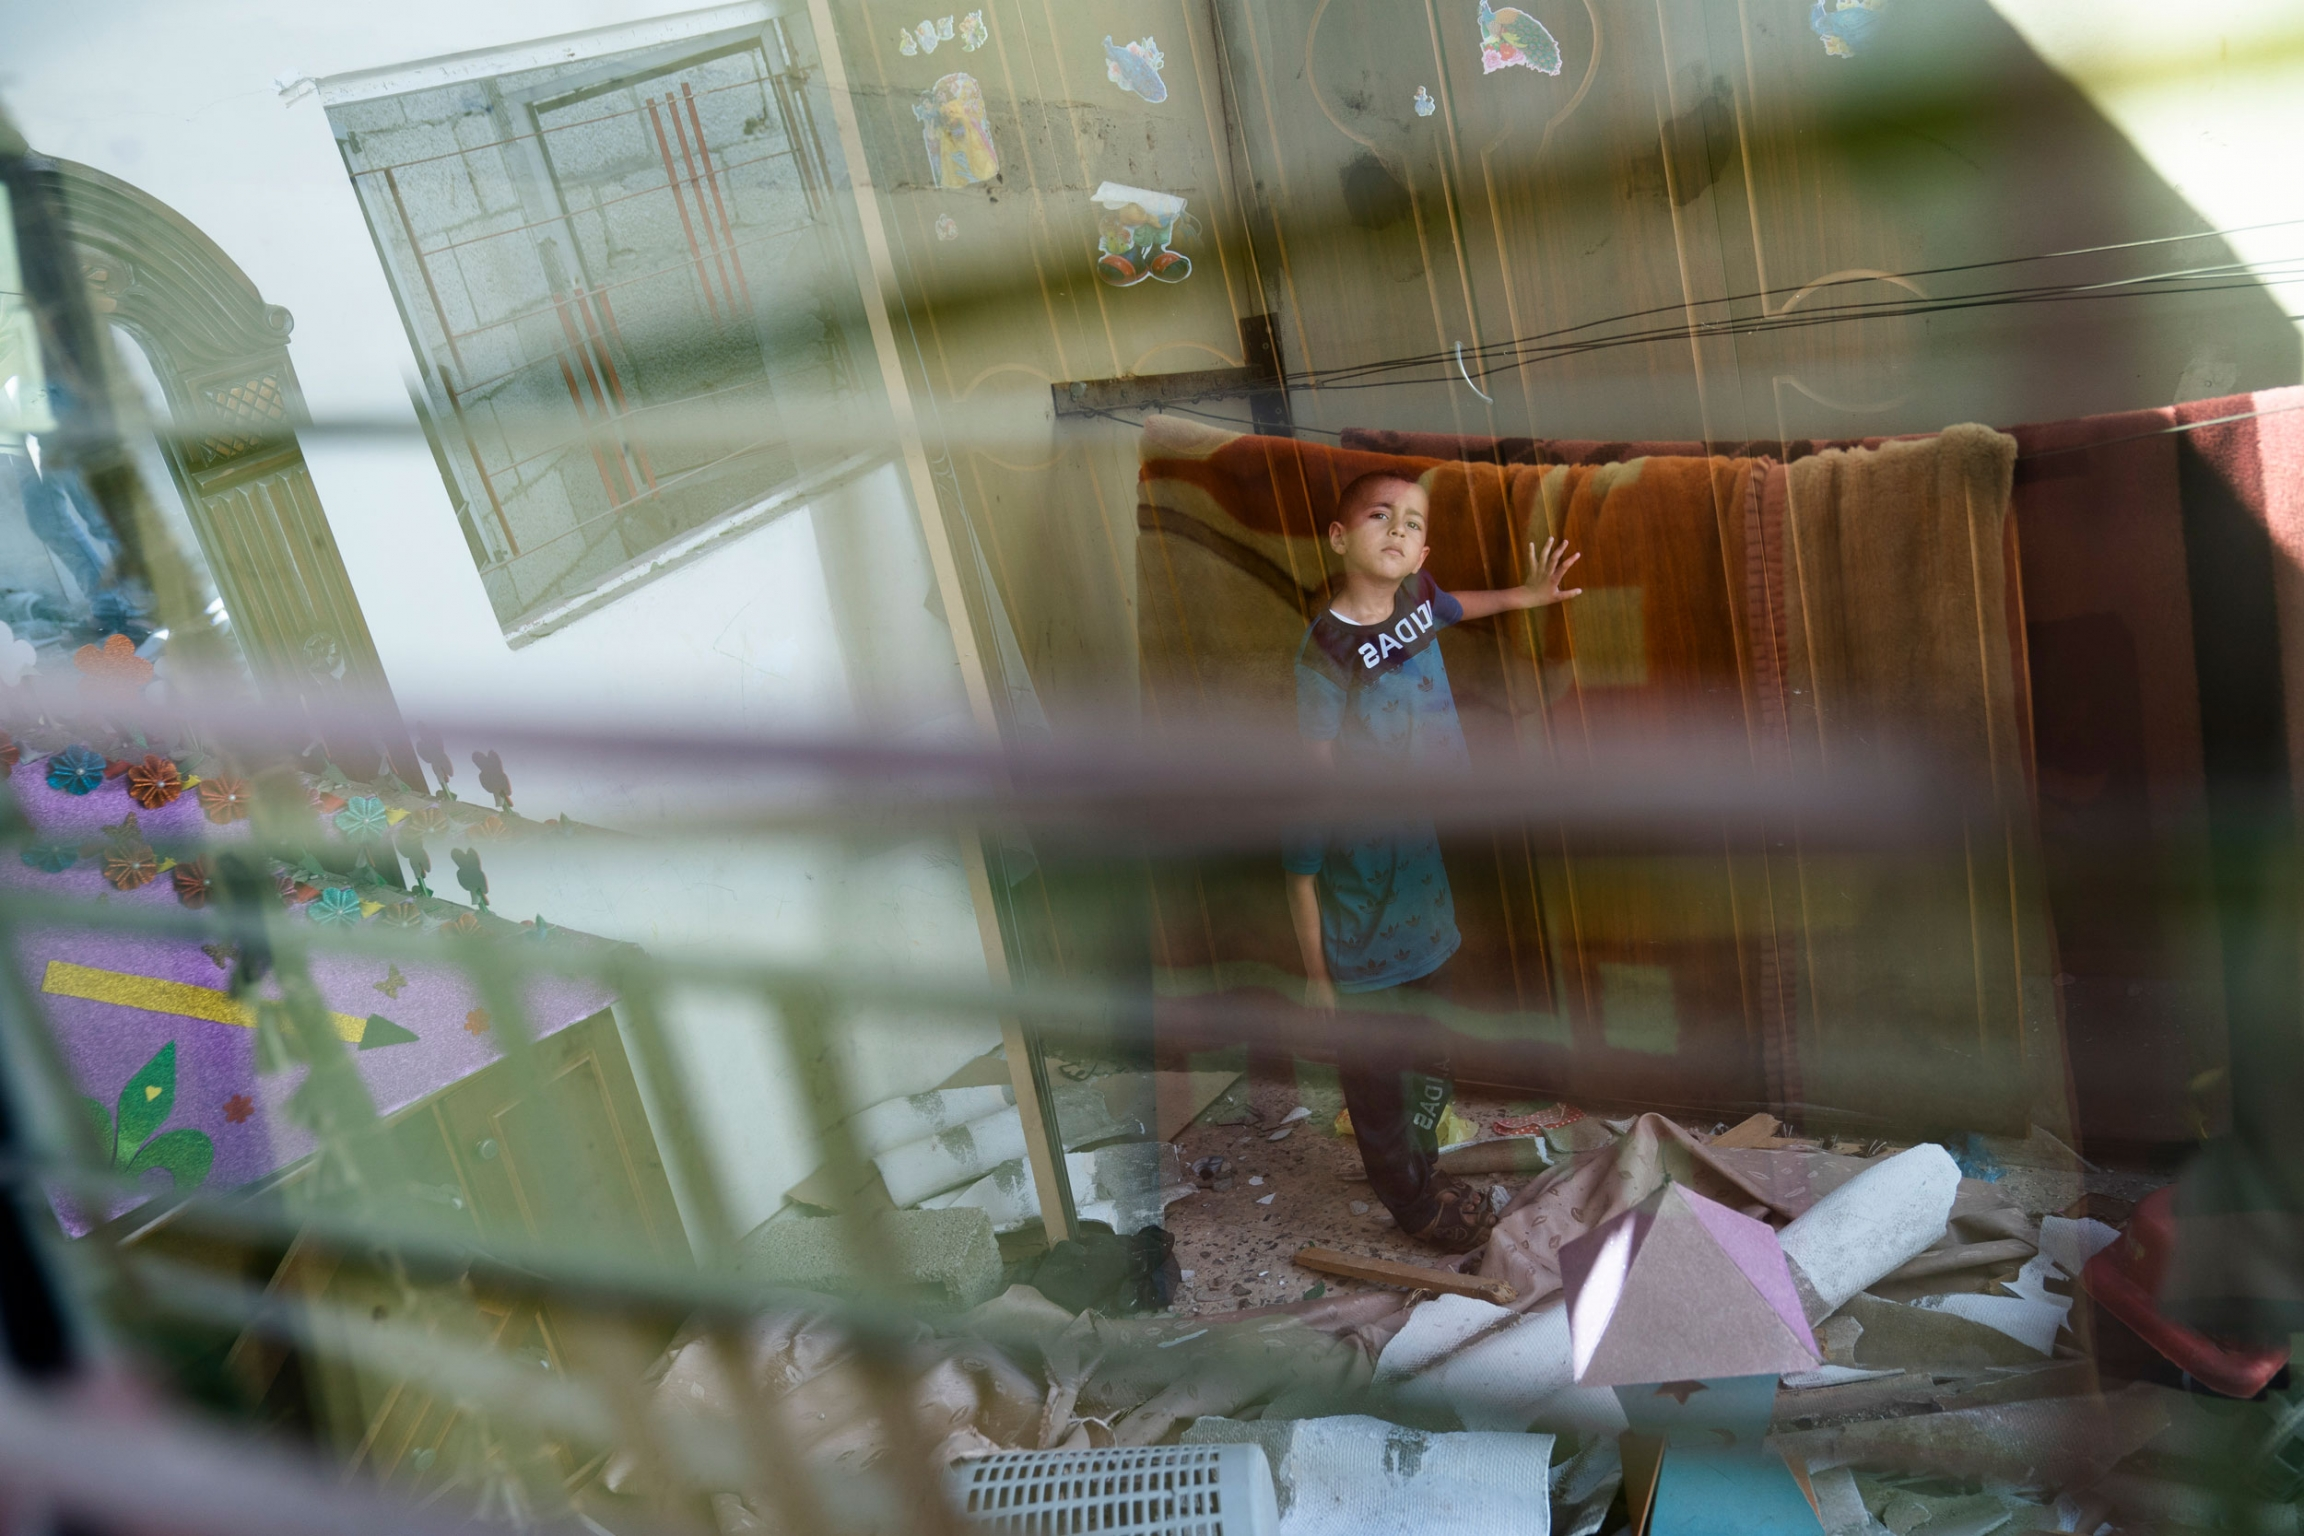 A young boy is shown standing with his hand on a blanked and seen through a window.